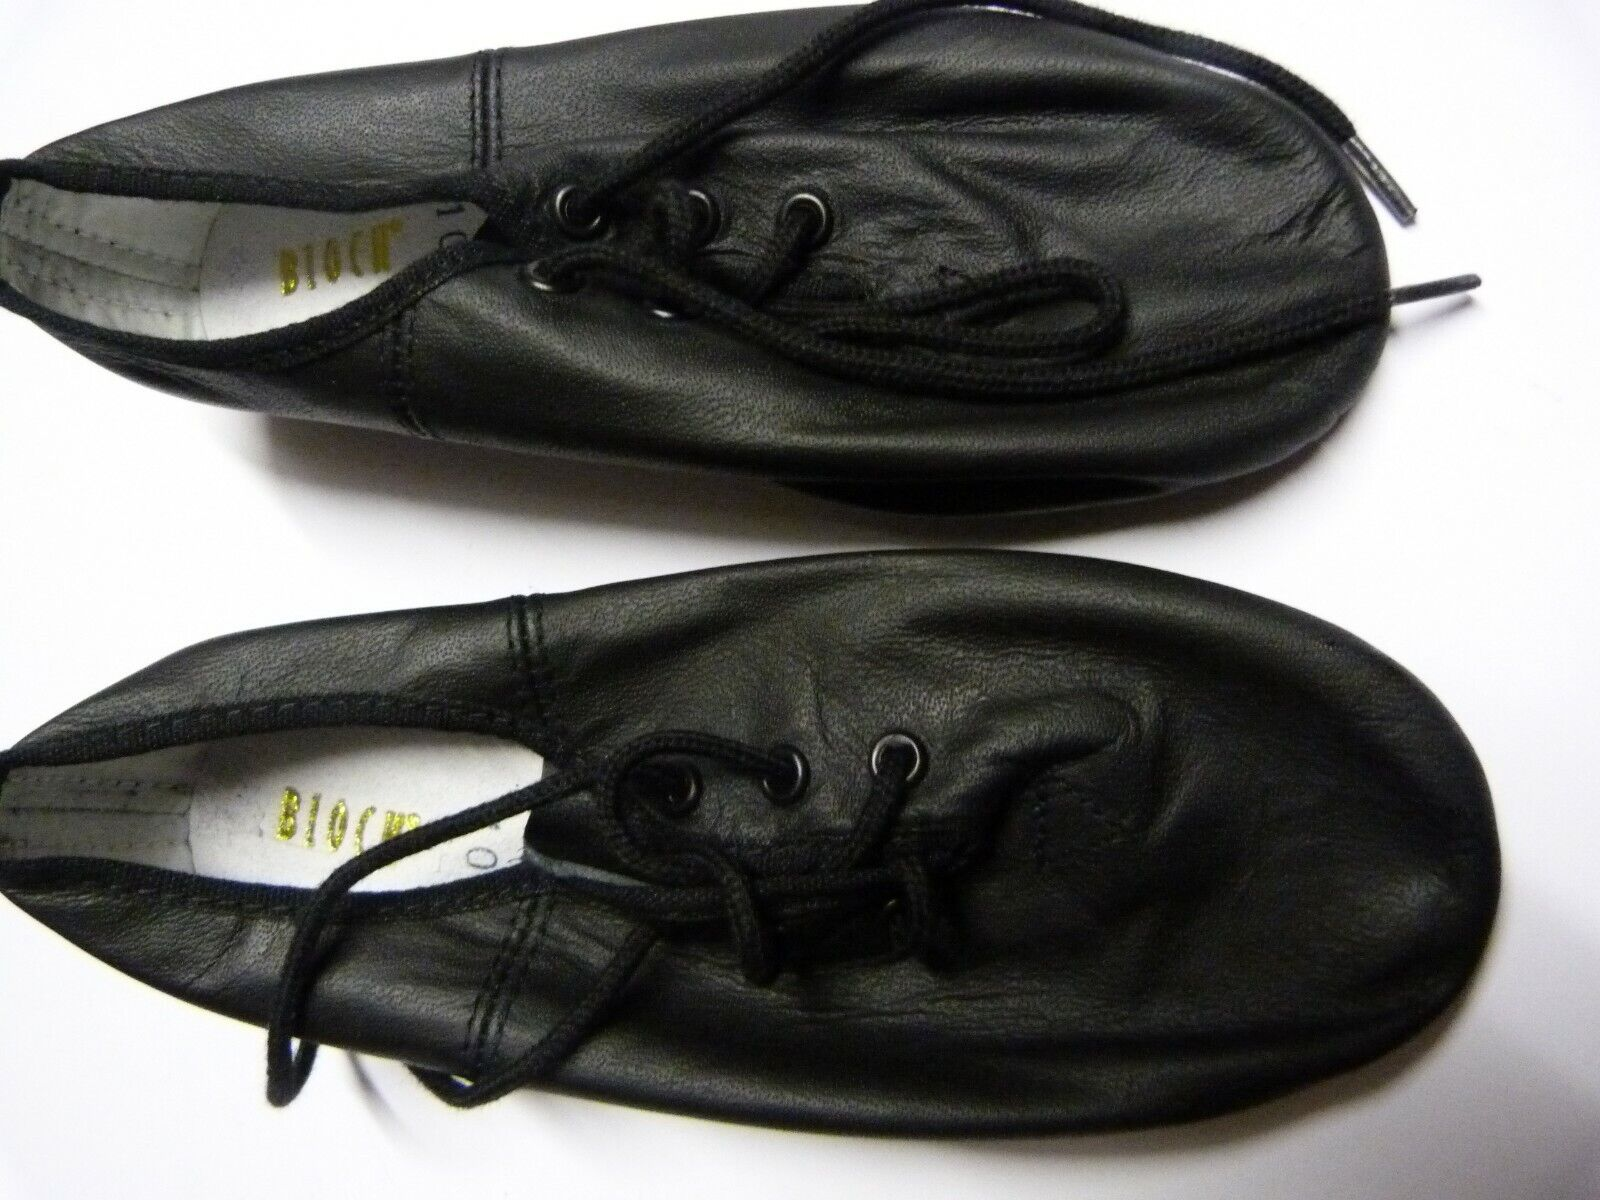 New rubber full sole jazz shoes by Bloch, So Danca and Roch Valley R